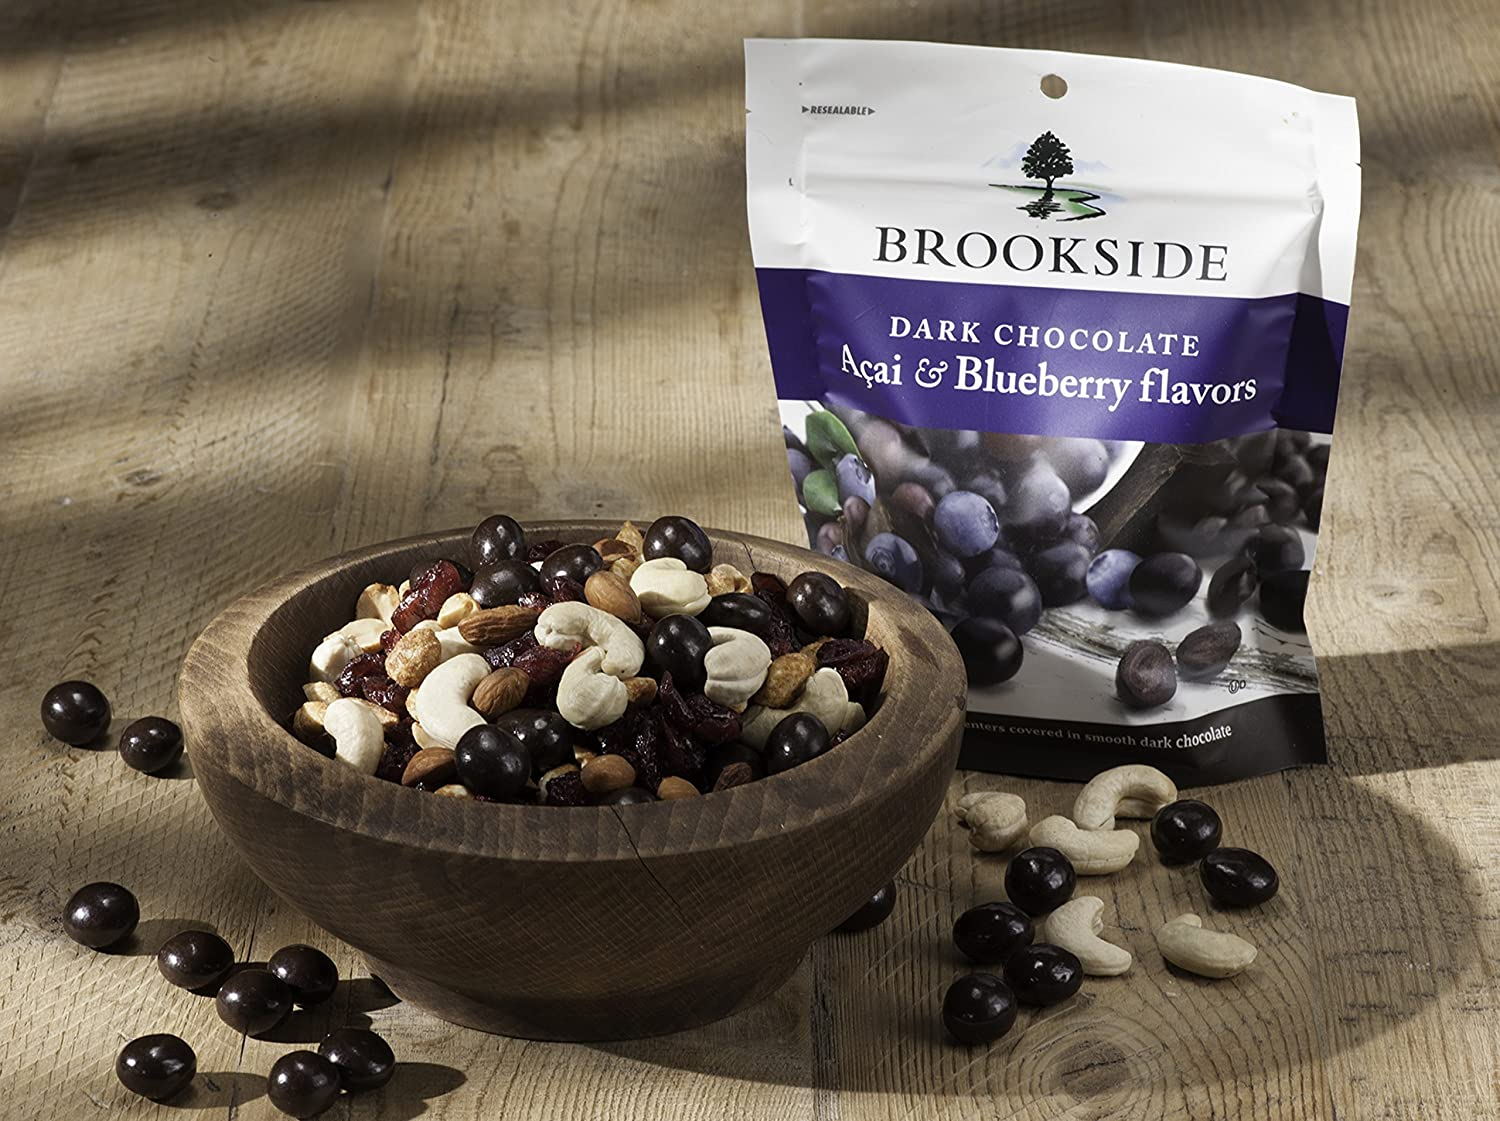 Amazon.com : Brookside Dark Chocolate Candy, Acai and Blueberry ...